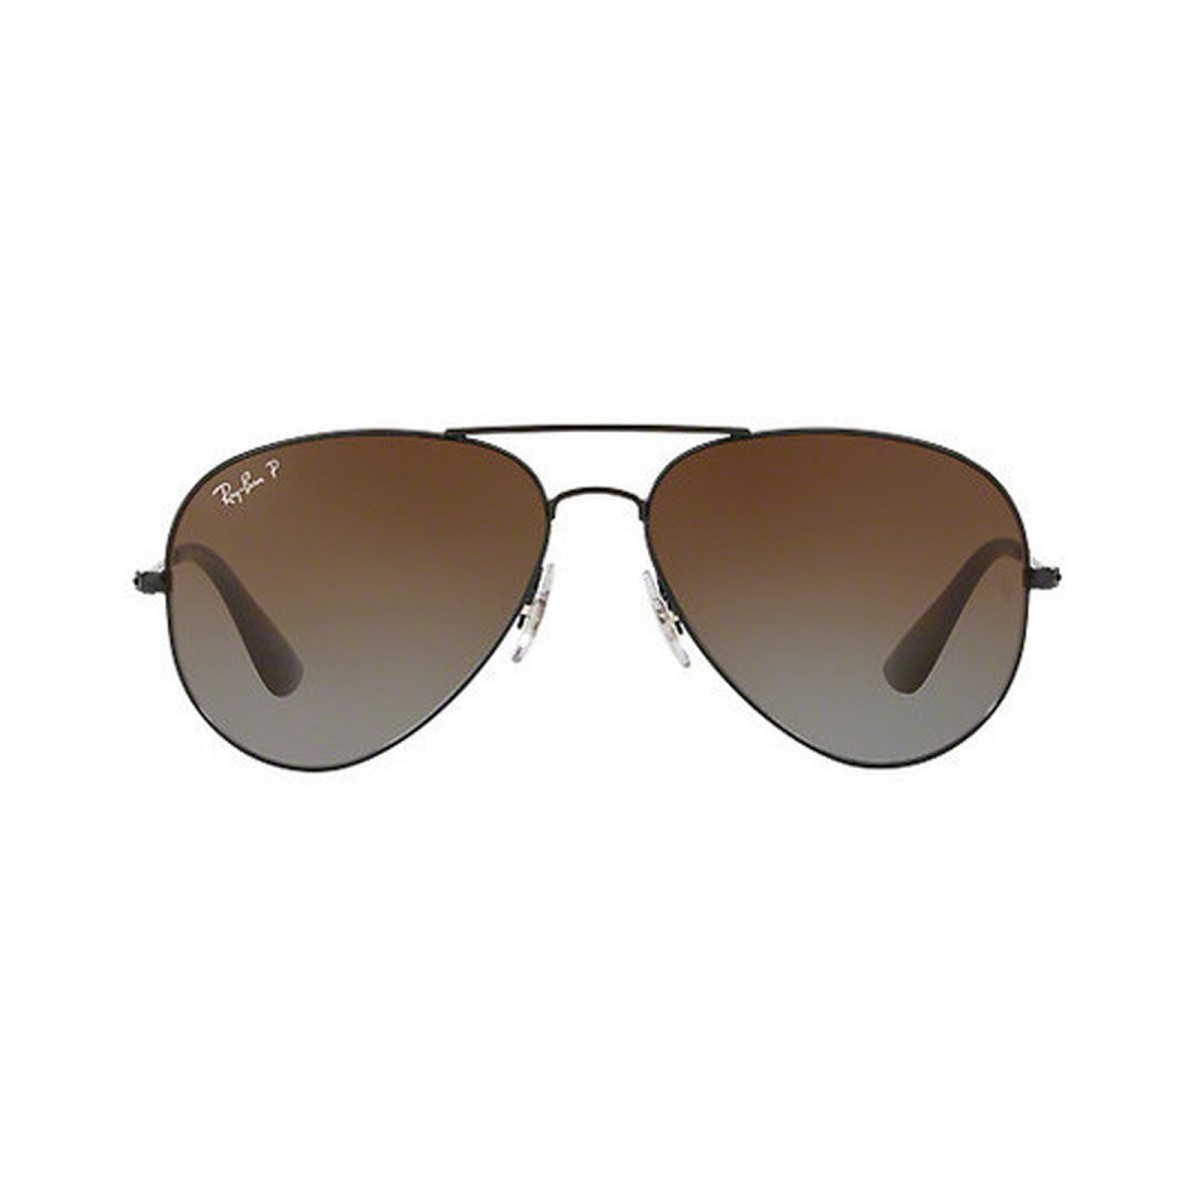 0109336ee5 Ray Ban Polarized Black Aviator Unisex Sunglasses RB3558-02 T5-58 ...